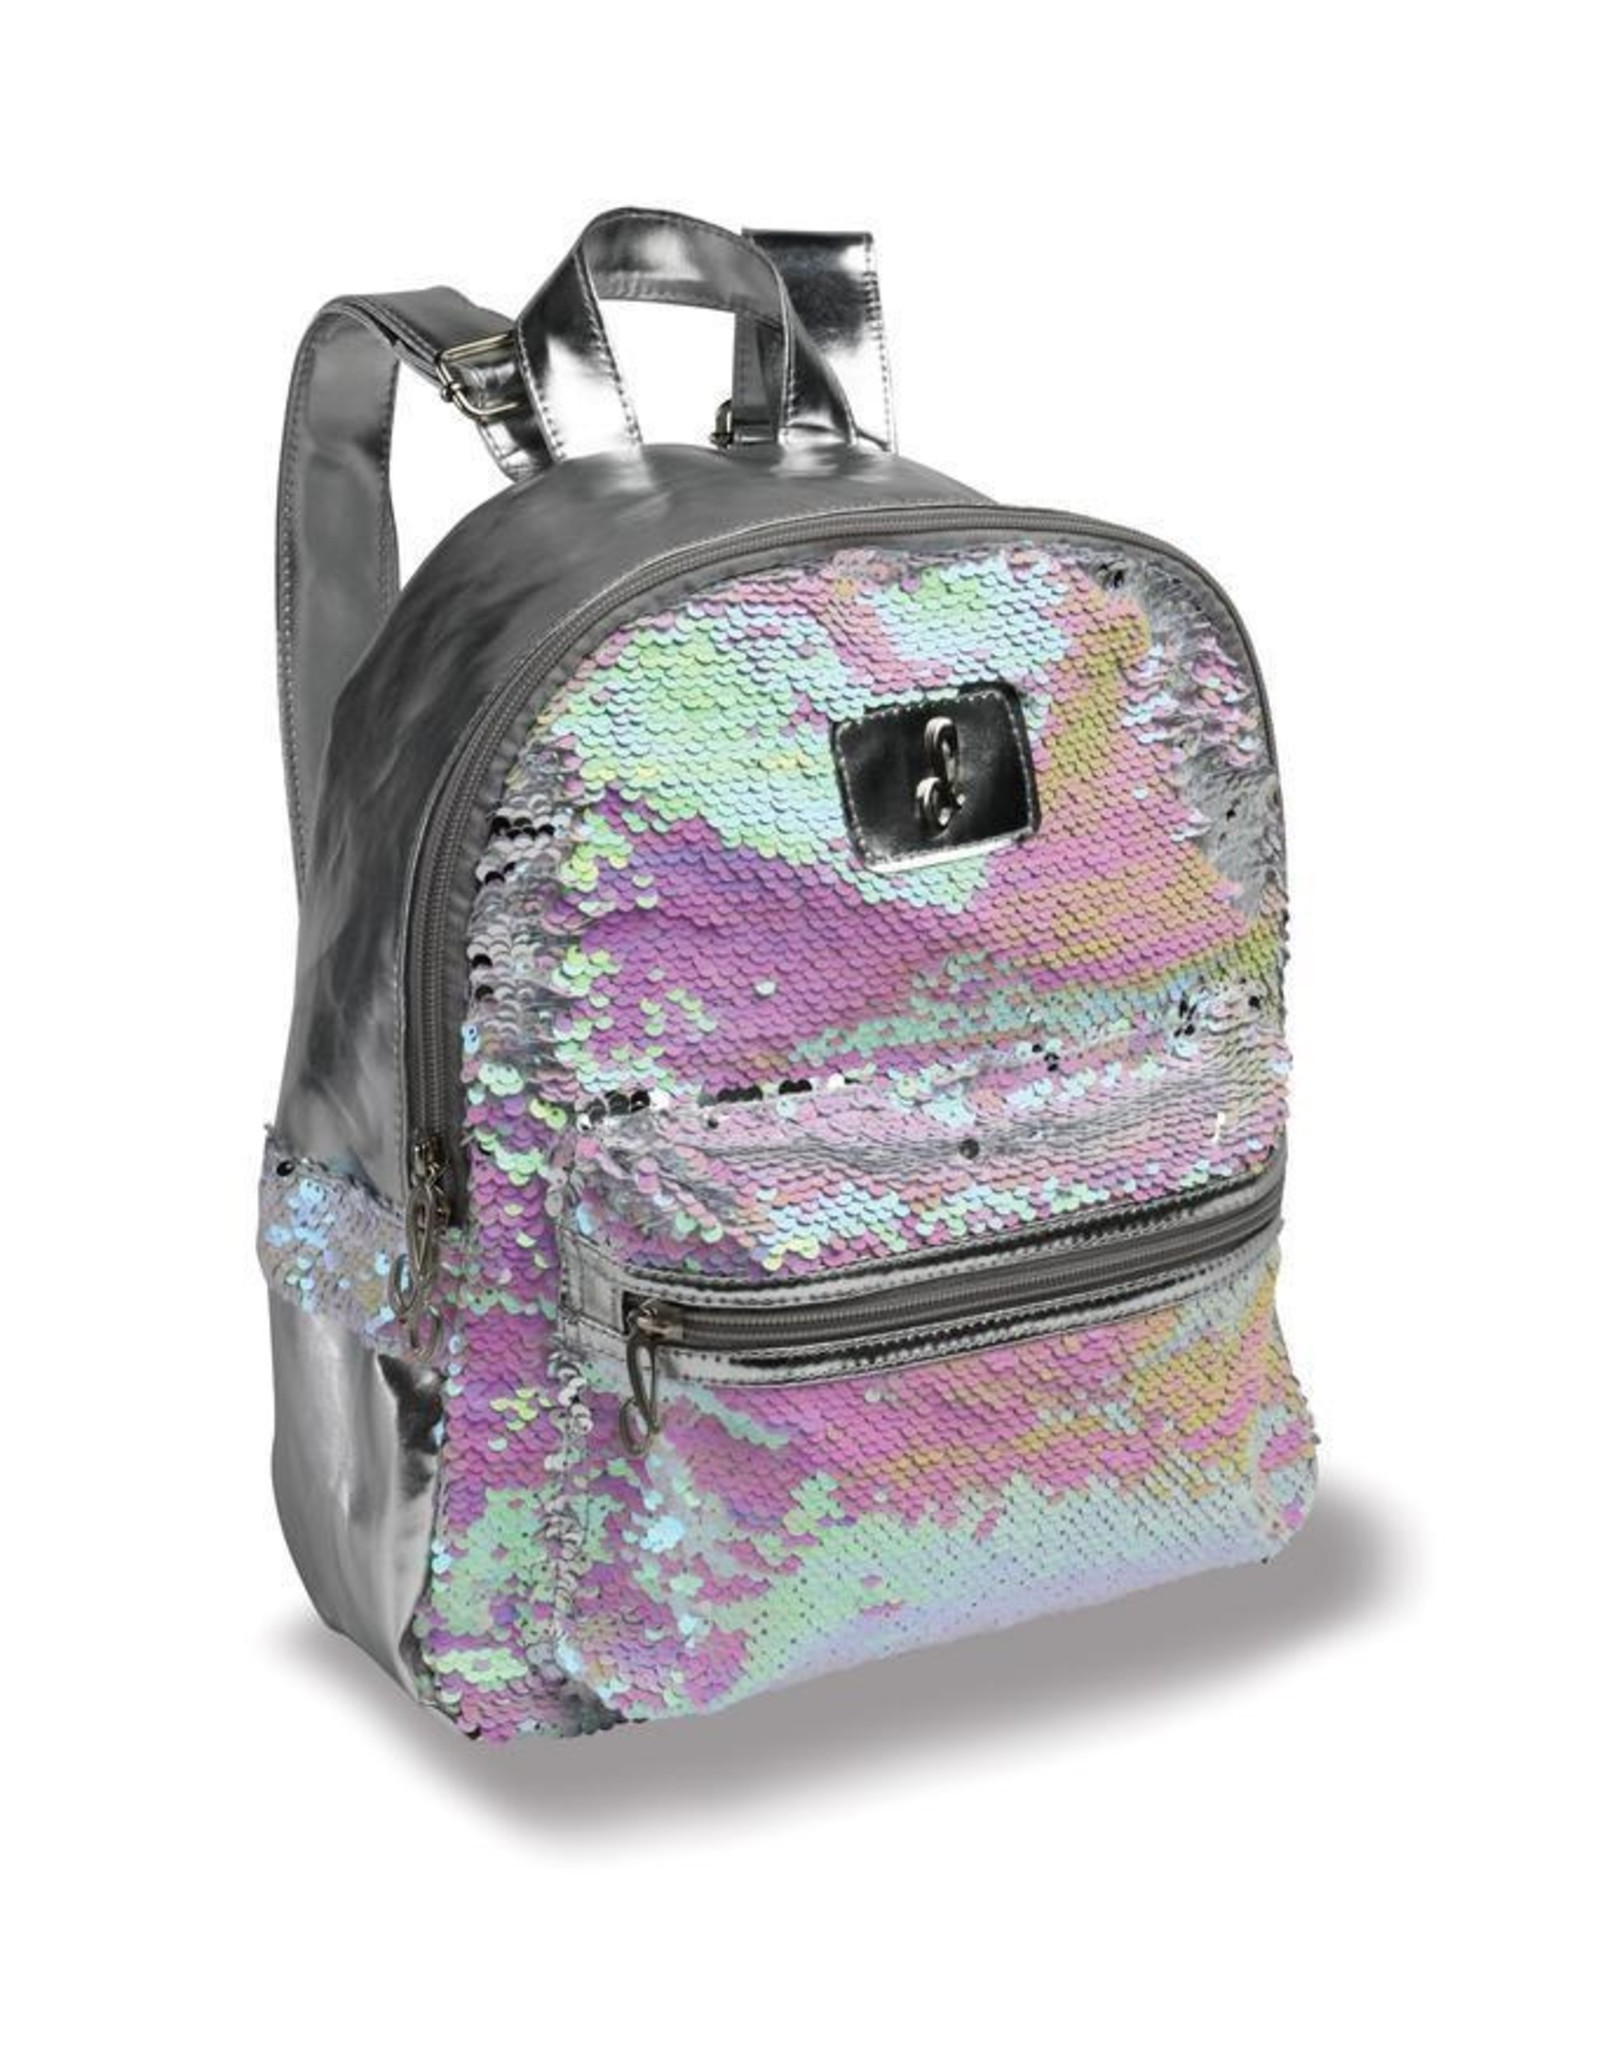 DANZ N MOTION PEARLESCENT BACKPACK (B835)